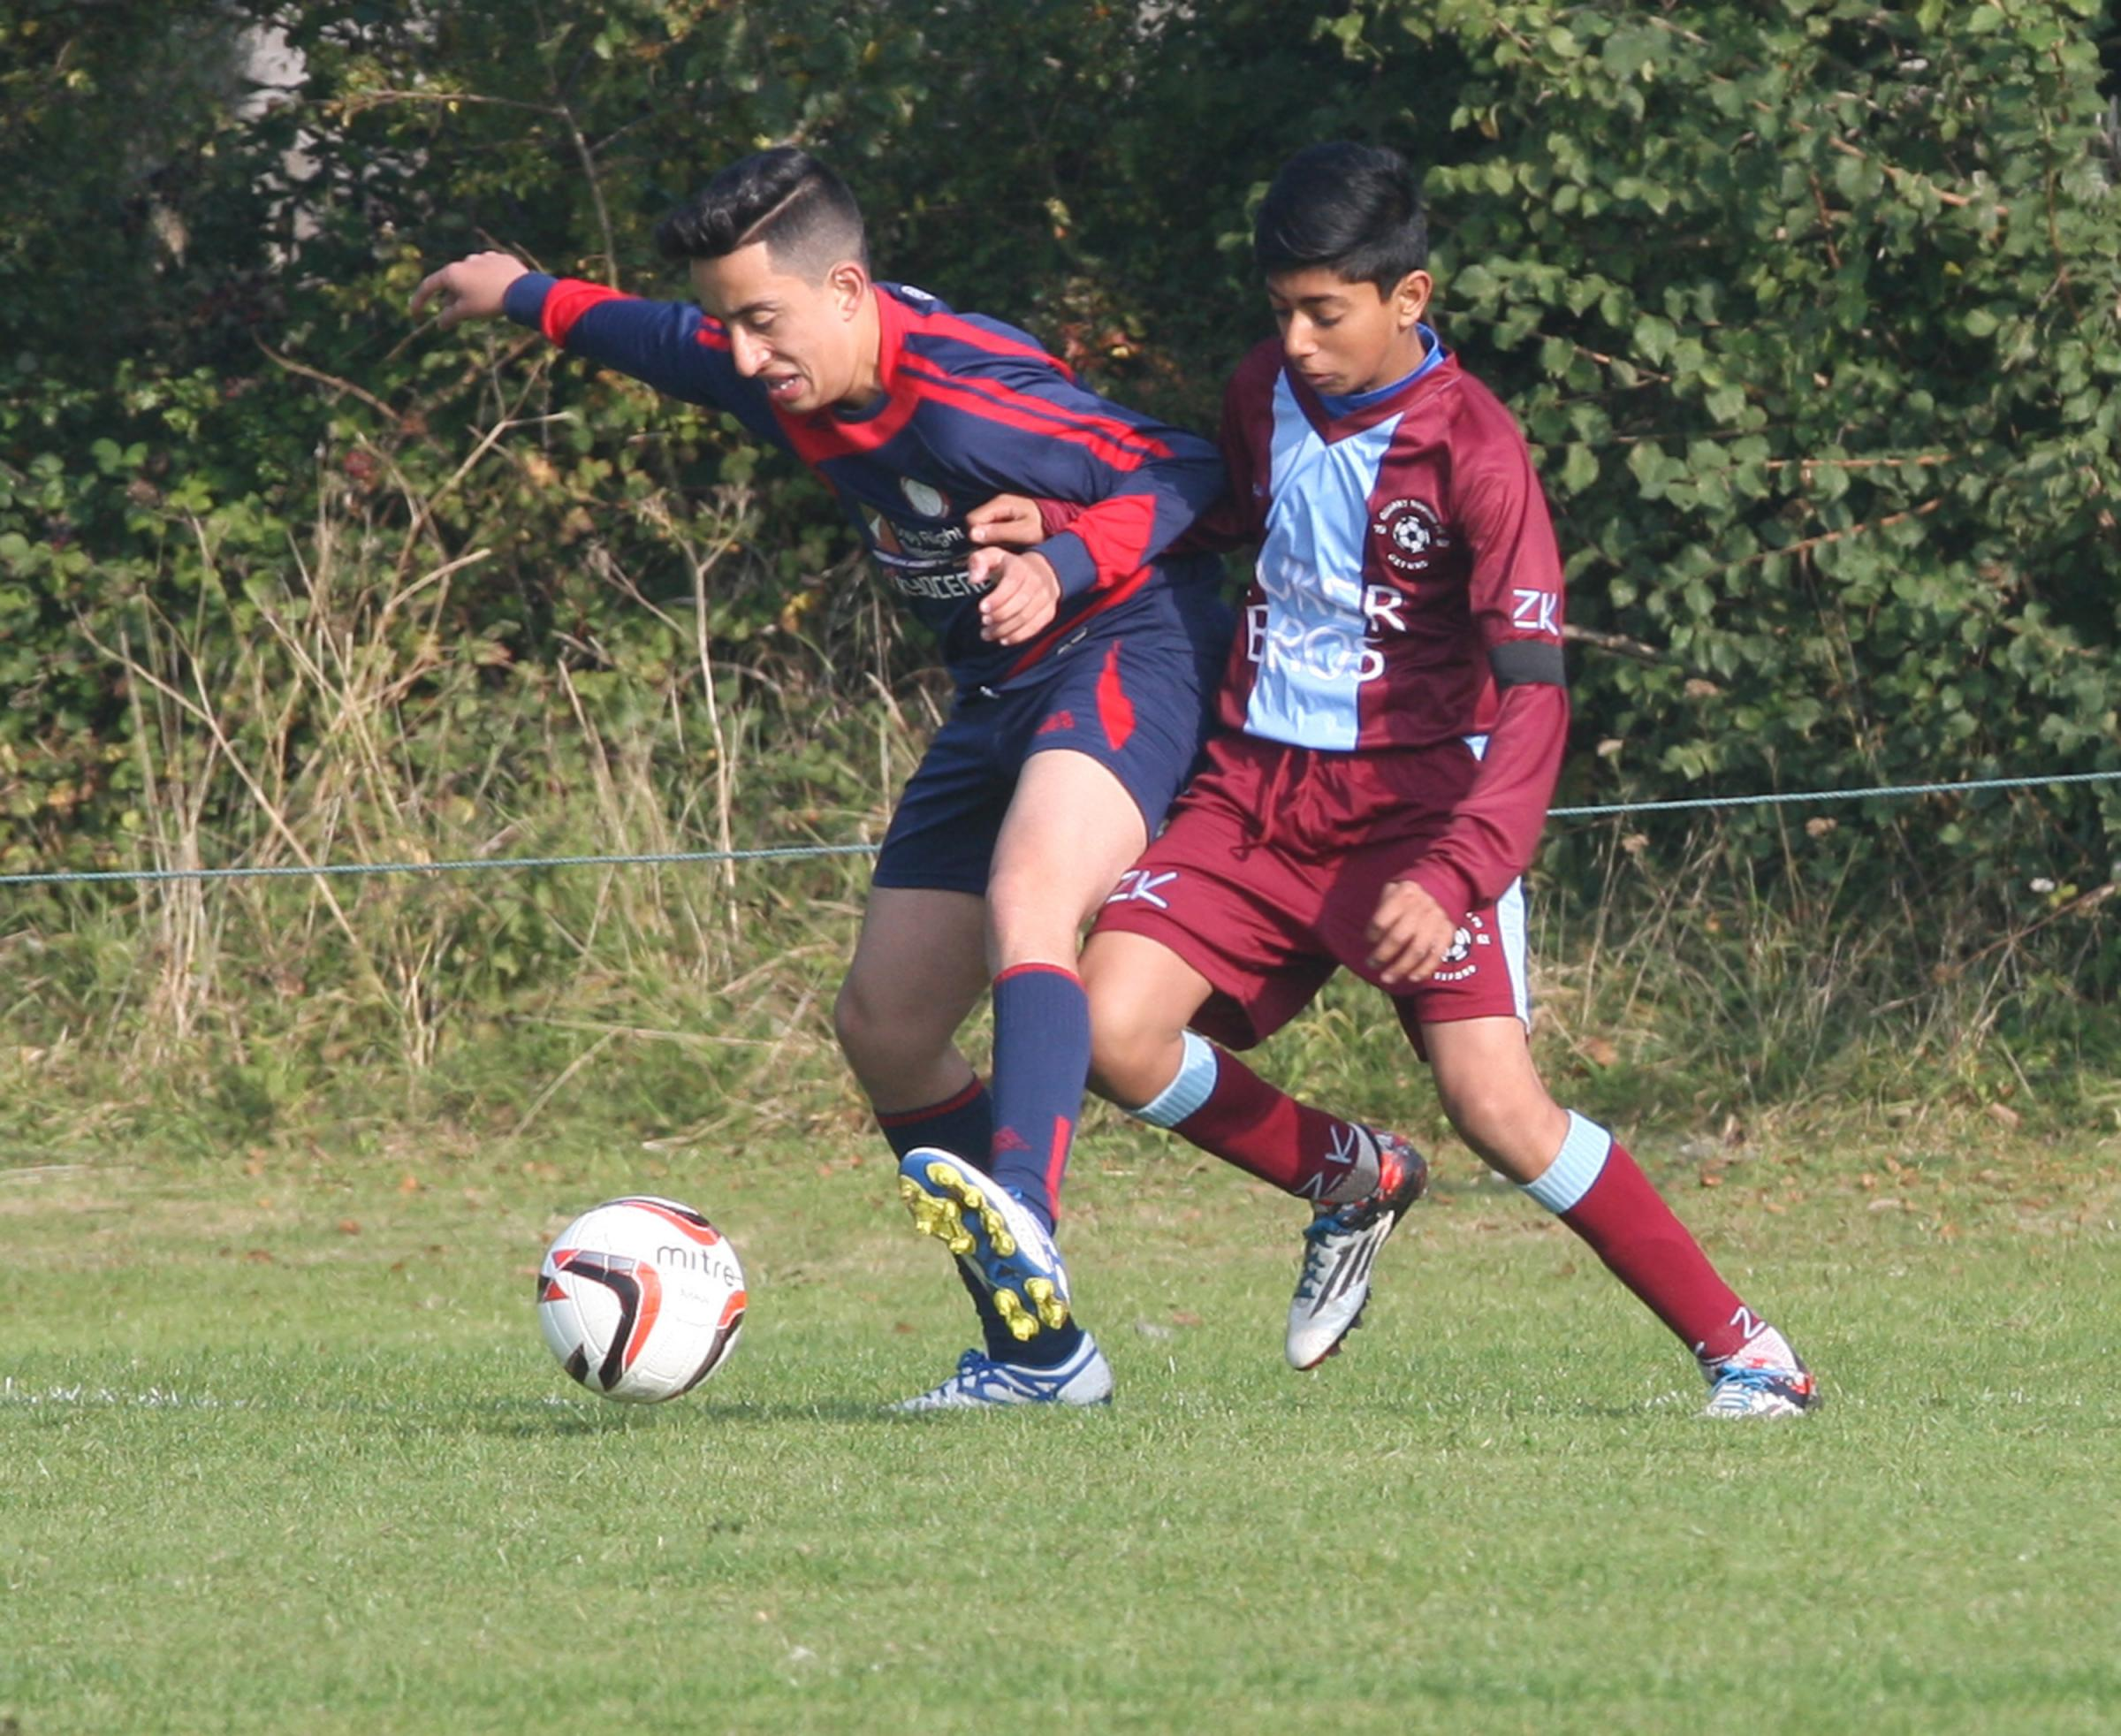 Marston Saints' Dylan Thagie holds Quarry Rovers' Umair Yousef at bay during the 1-1 draw at Marston in the Under 15 C League           Picture: Steve Wheeler